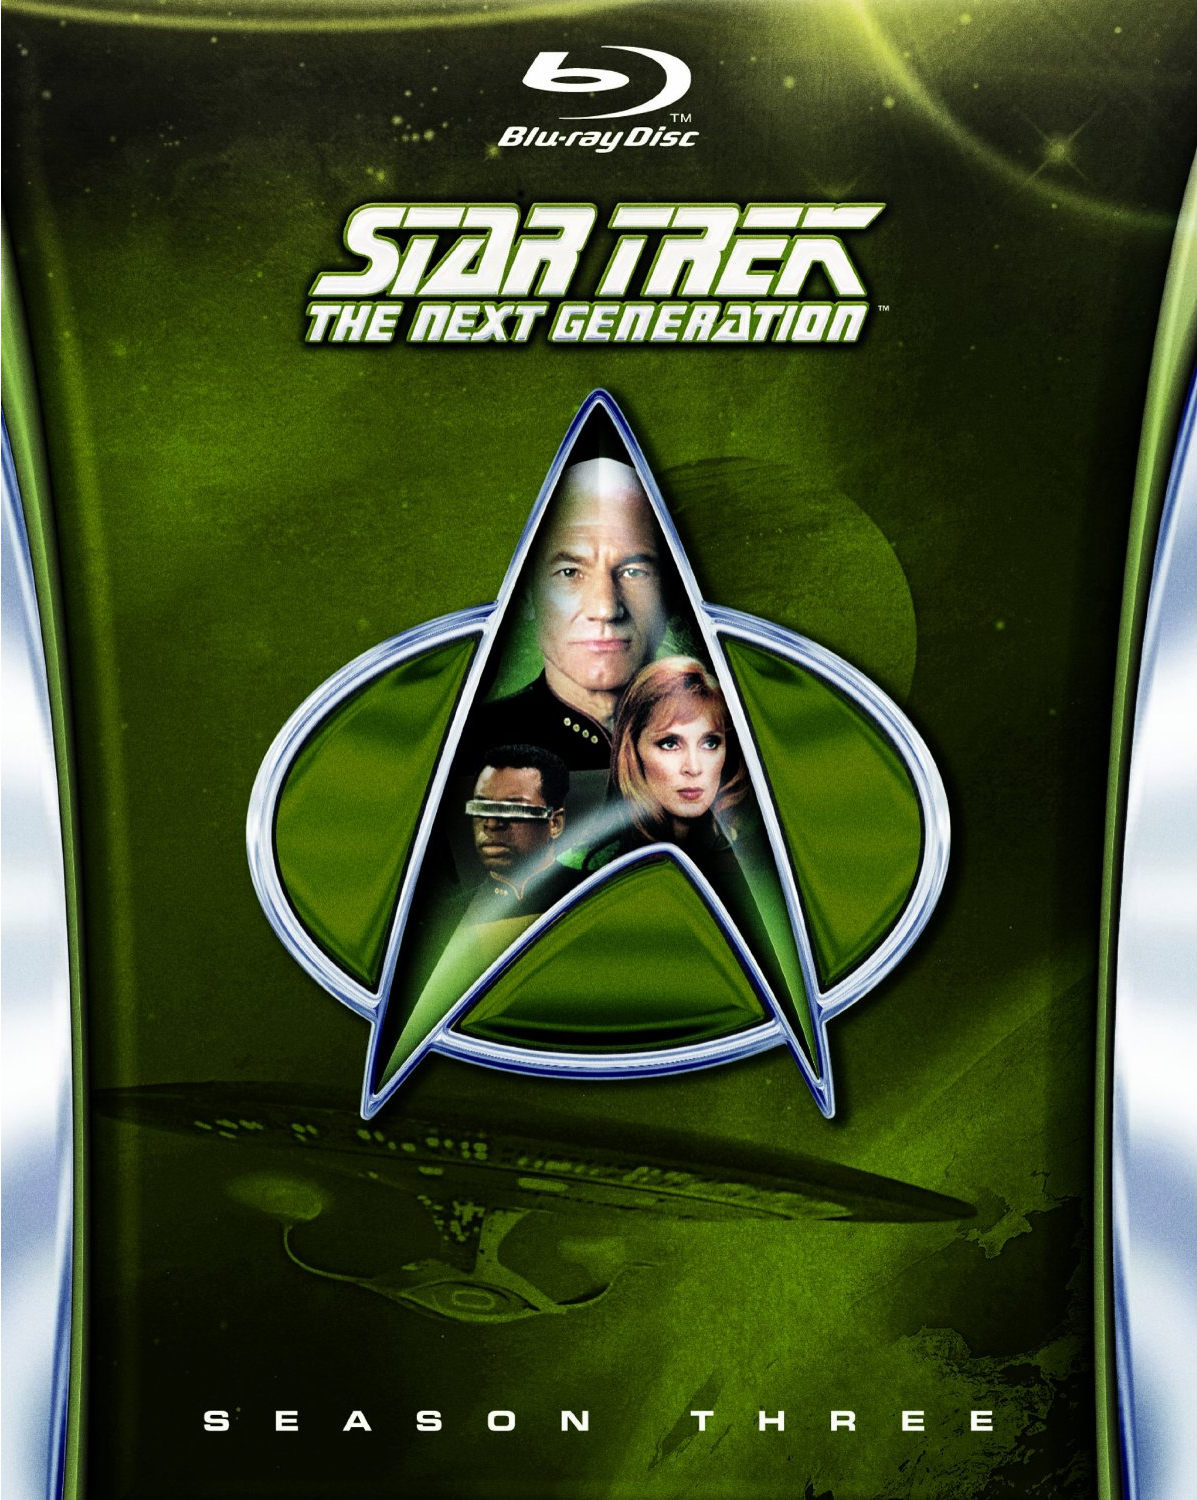 Star Trek The Next Generation Season 3 Blu-ray cover - scifiempire.net